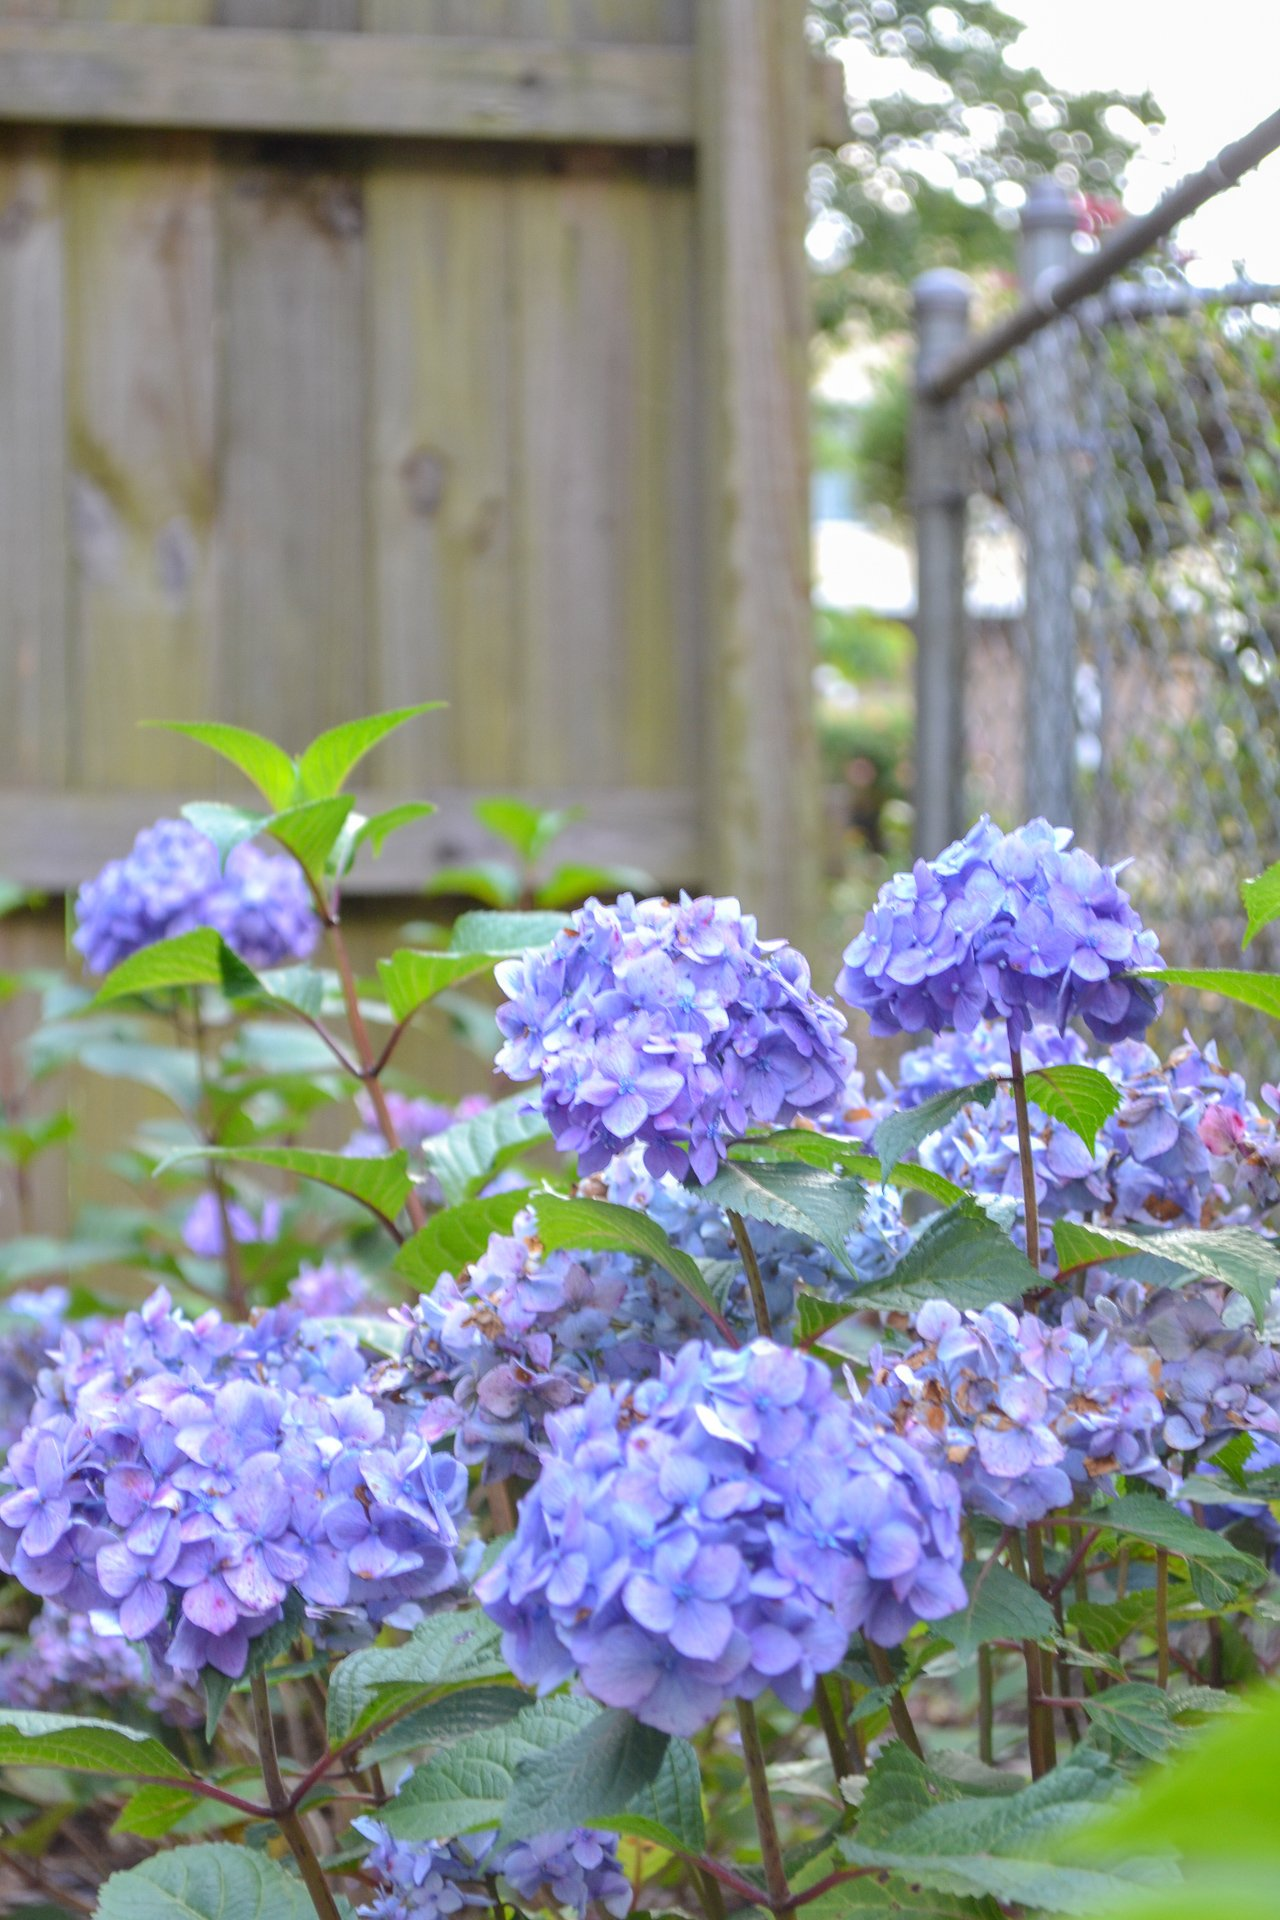 purple bloomstruck hydrangeas growing next to fence